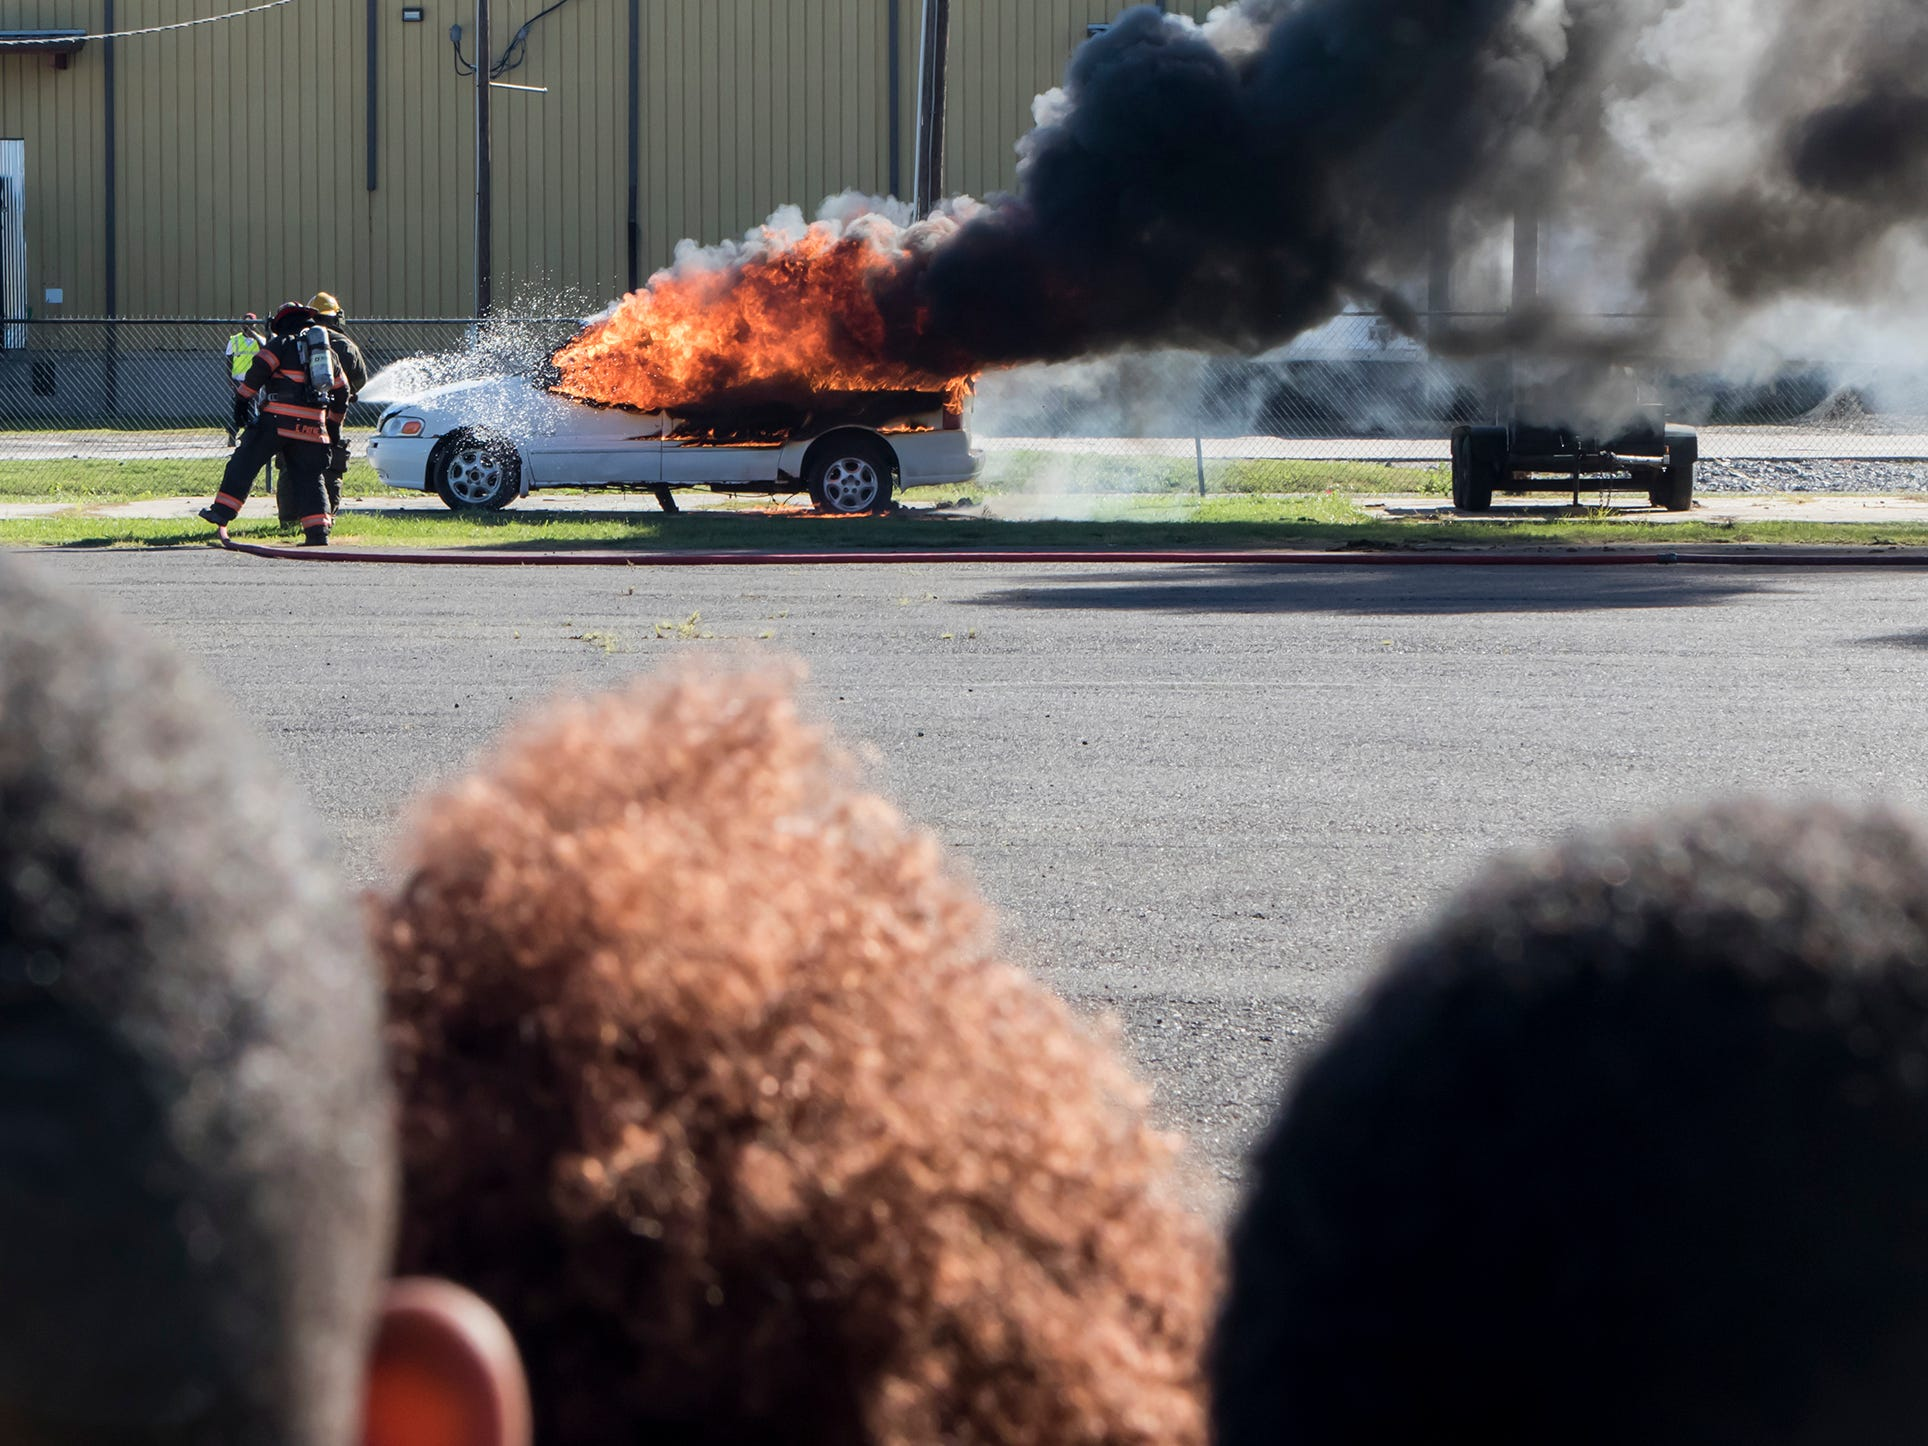 Children watch as Monroe firefighters work to extinguish a flaming car during a fire prevention week demonstration held in Monroe, La. on Oct. 11.